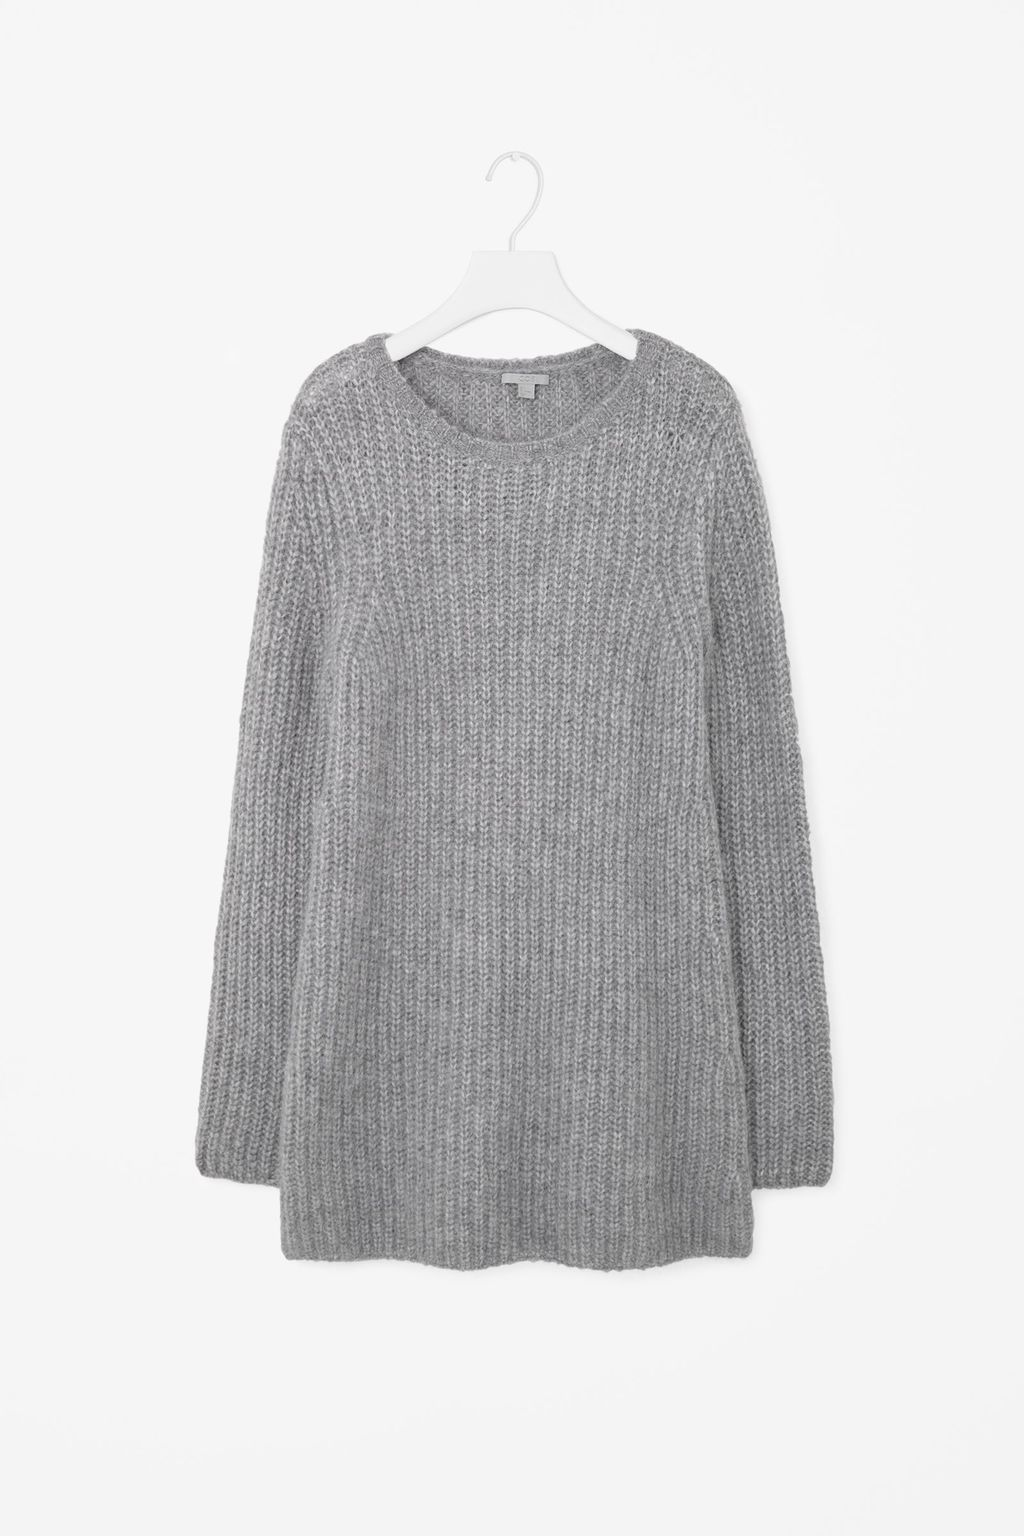 Long Knit Jumper - neckline: round neck; pattern: plain; length: below the bottom; style: tunic; predominant colour: mid grey; occasions: casual, creative work; fibres: wool - mix; fit: loose; sleeve length: long sleeve; sleeve style: standard; texture group: knits/crochet; pattern type: knitted - big stitch; season: a/w 2015; wardrobe: basic